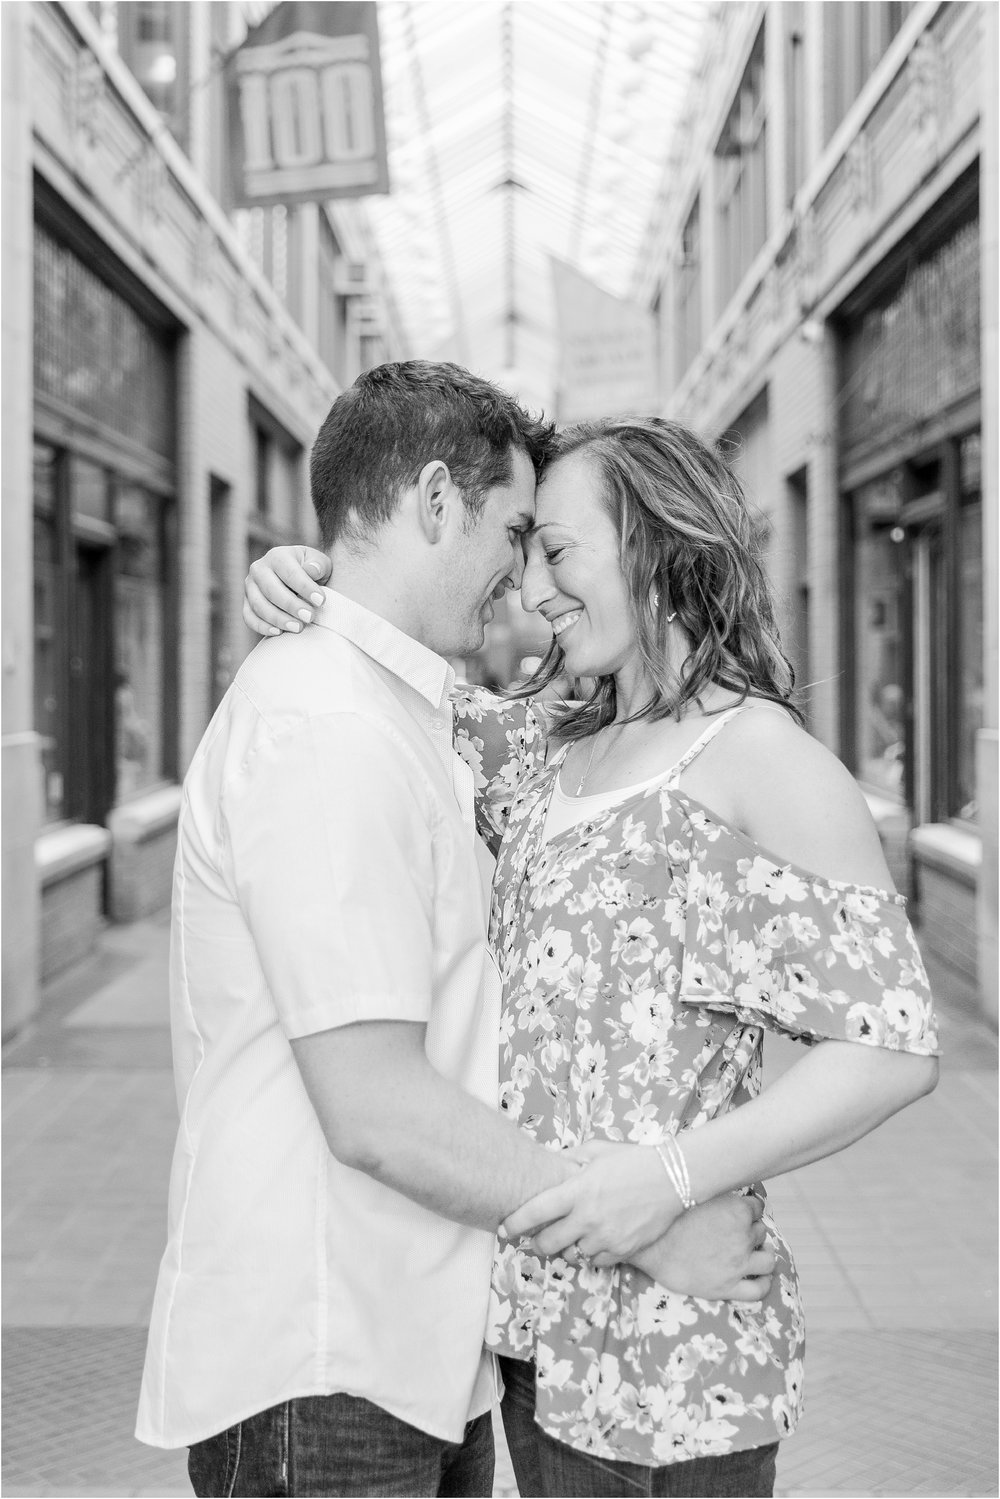 fun-adventurous-engagement-photos-at-the-nickels-arcade-in-ann-arbor-mi-by-courtney-carolyn-photography_0035.jpg